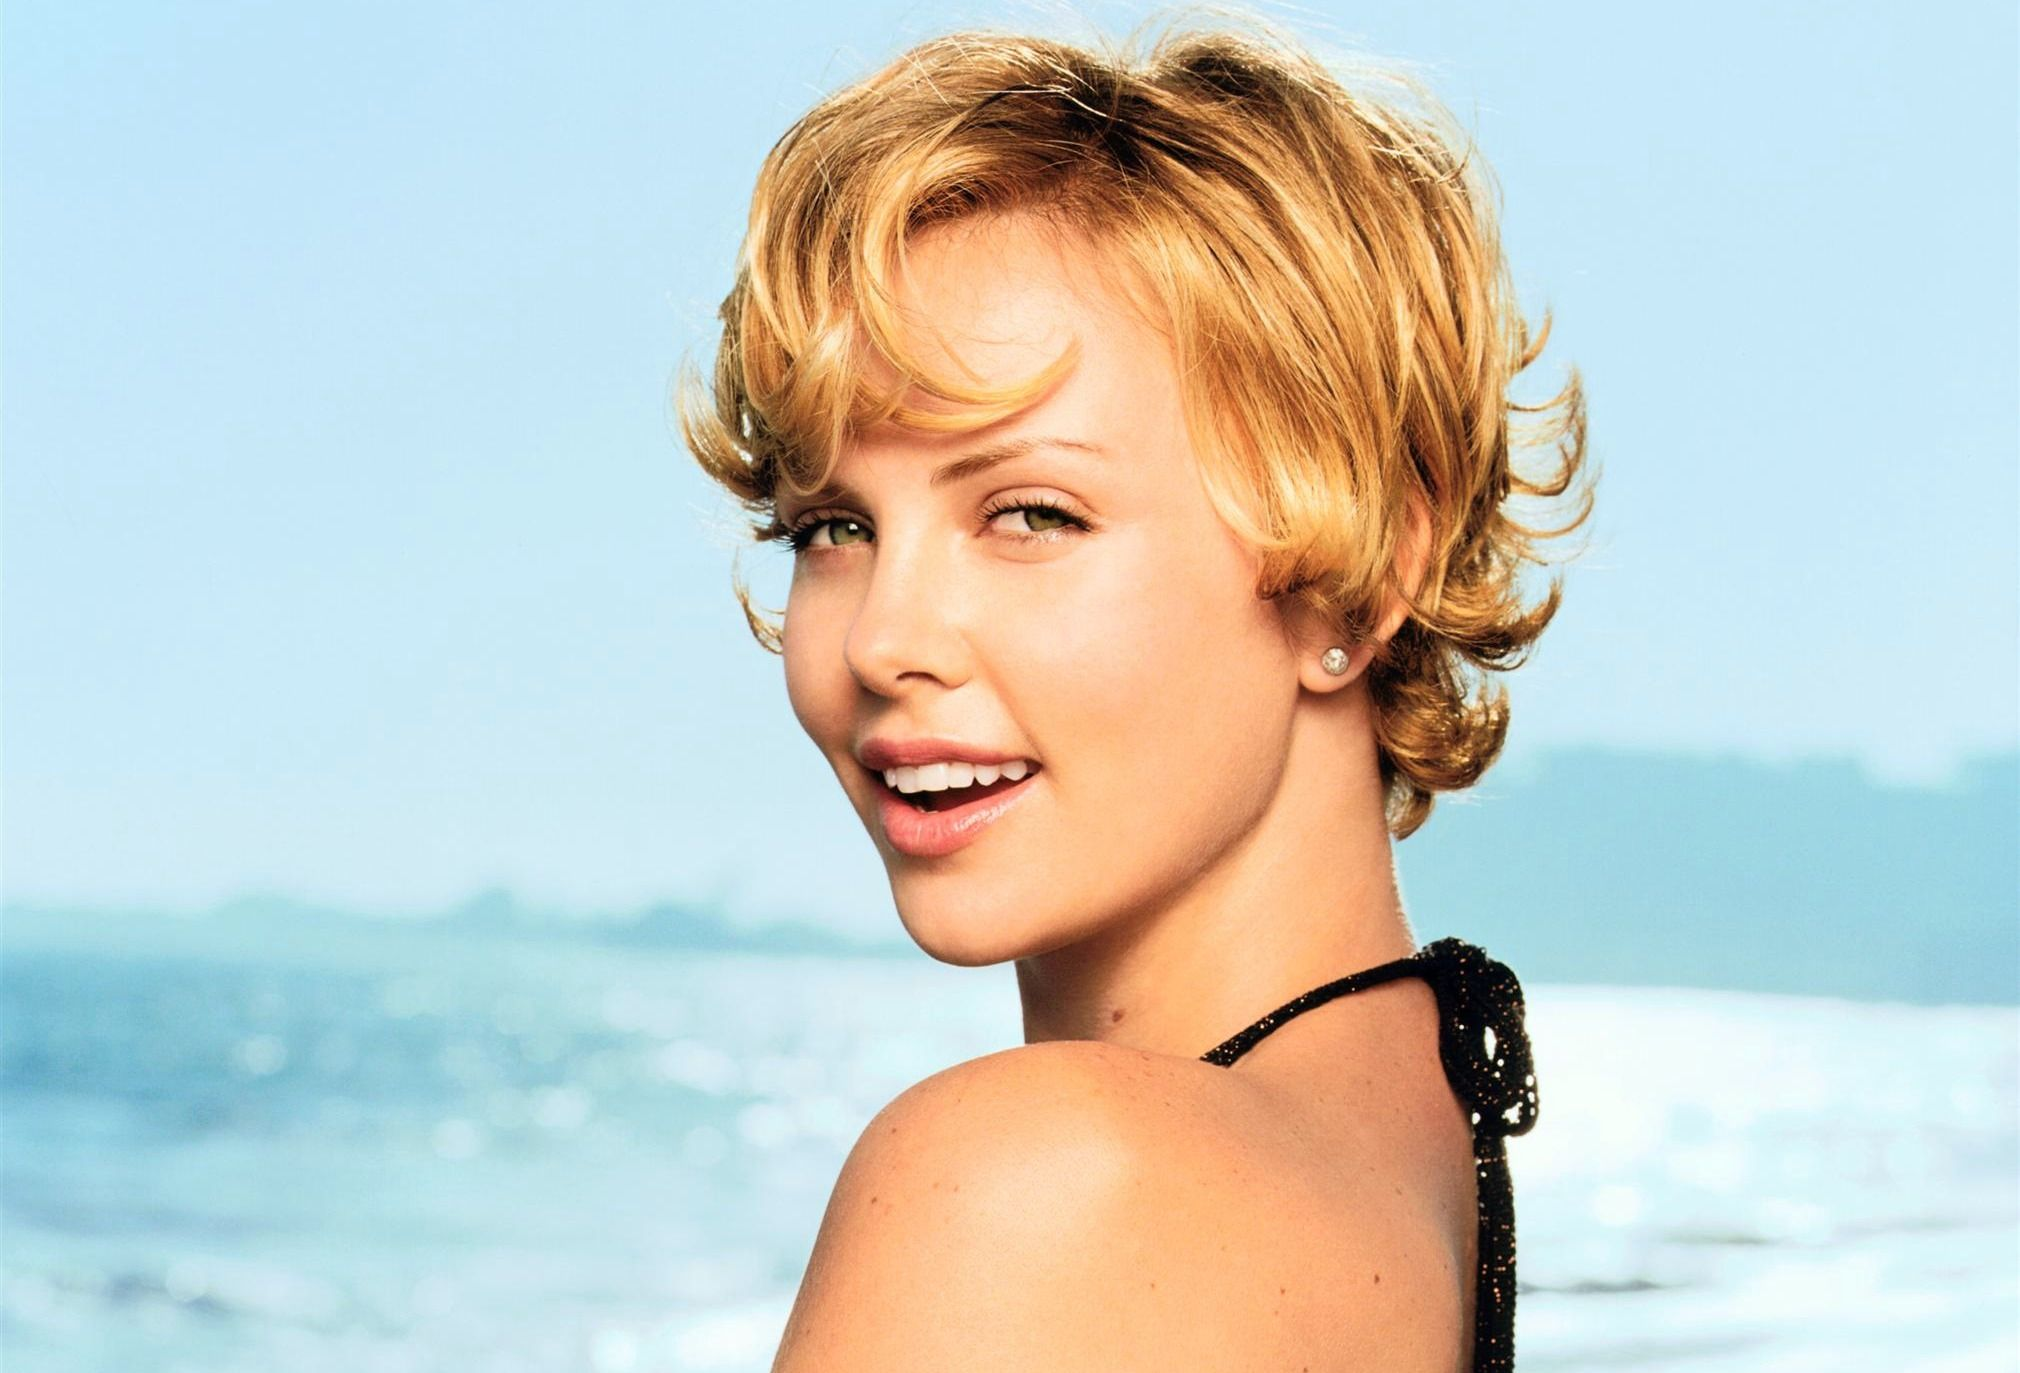 charlize wallpapers photos and desktop backgrounds for mobile up